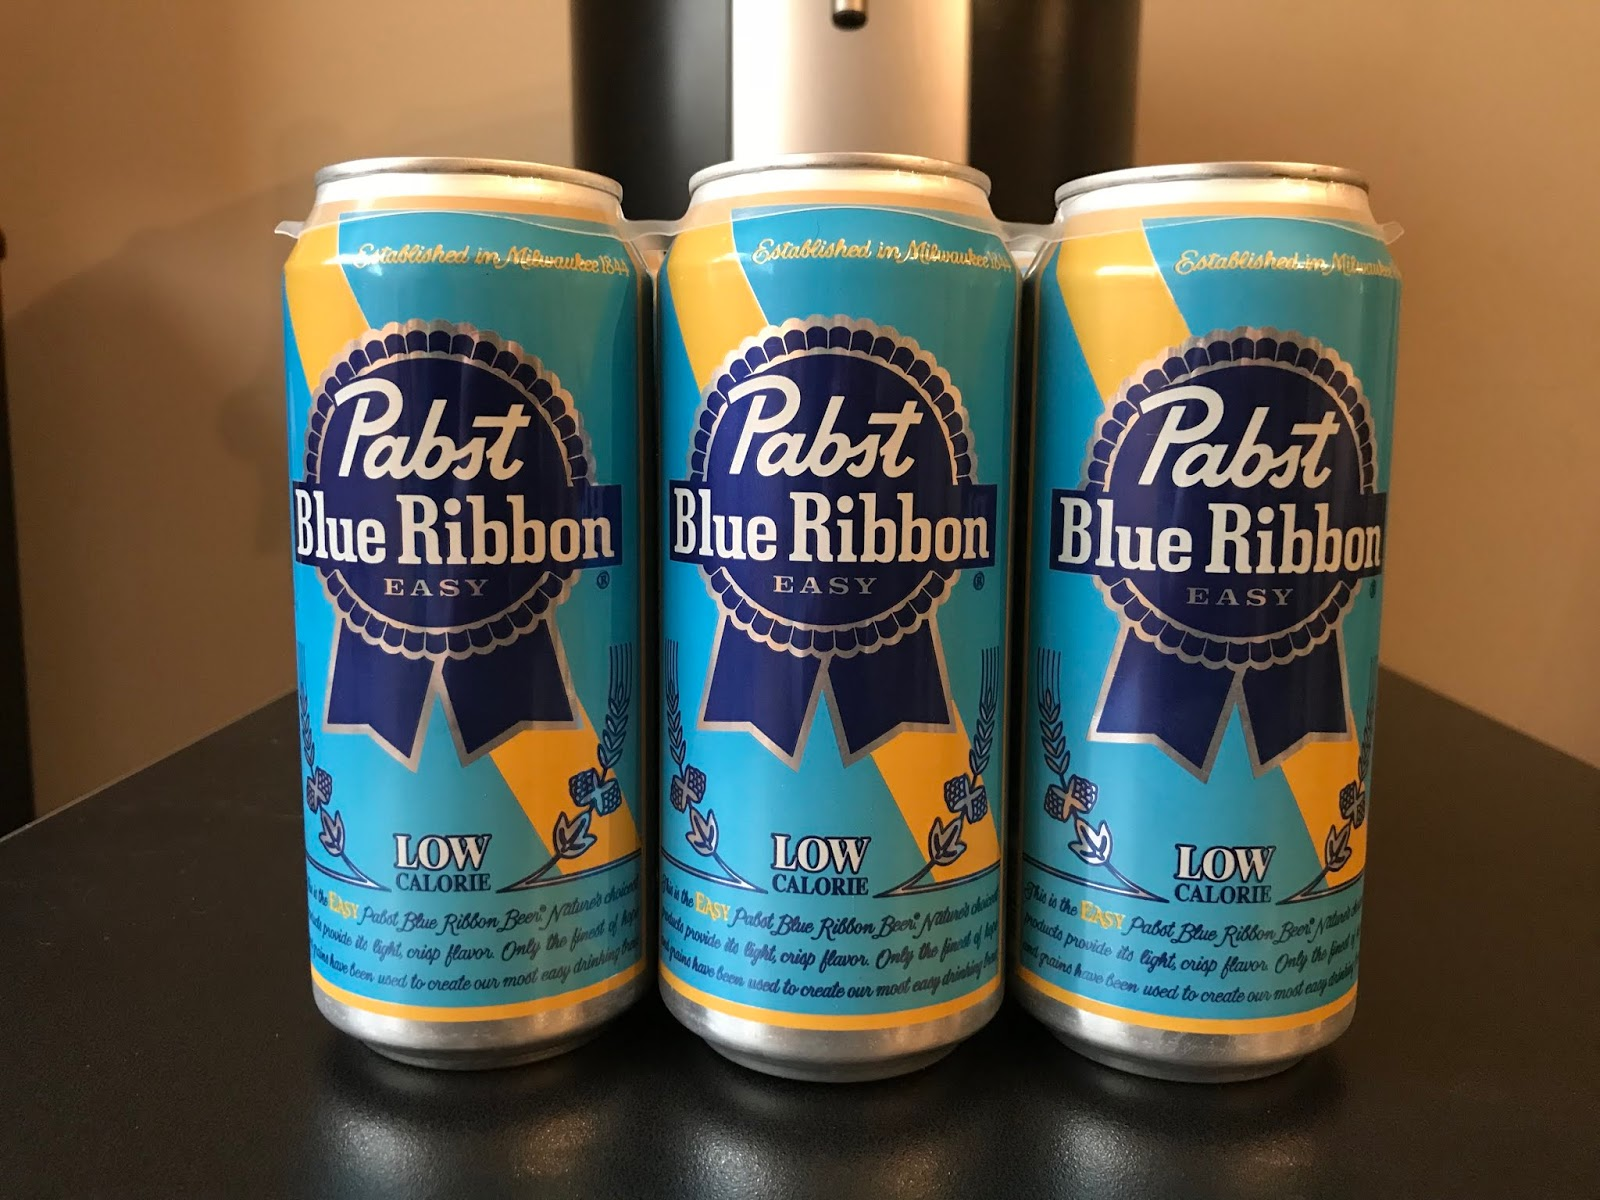 767c4a369dd Beer Of The Week - Pabst Blue Ribbon Easy - Bumming with Bobcat